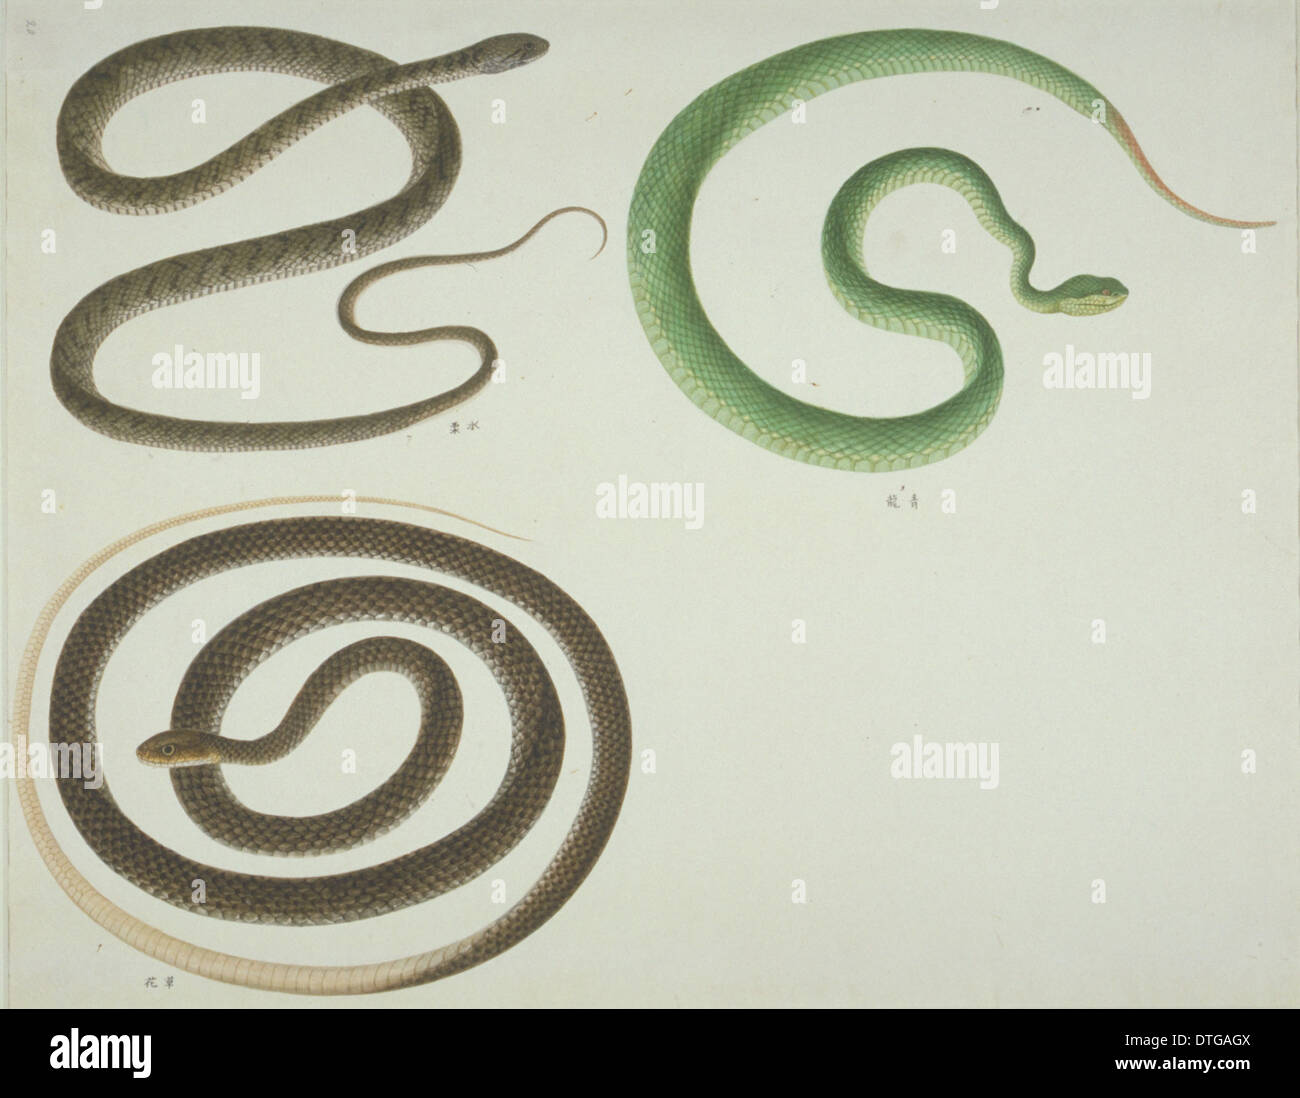 LS Plate 107 from the John Reeves Collection (Zoology) - Stock Image